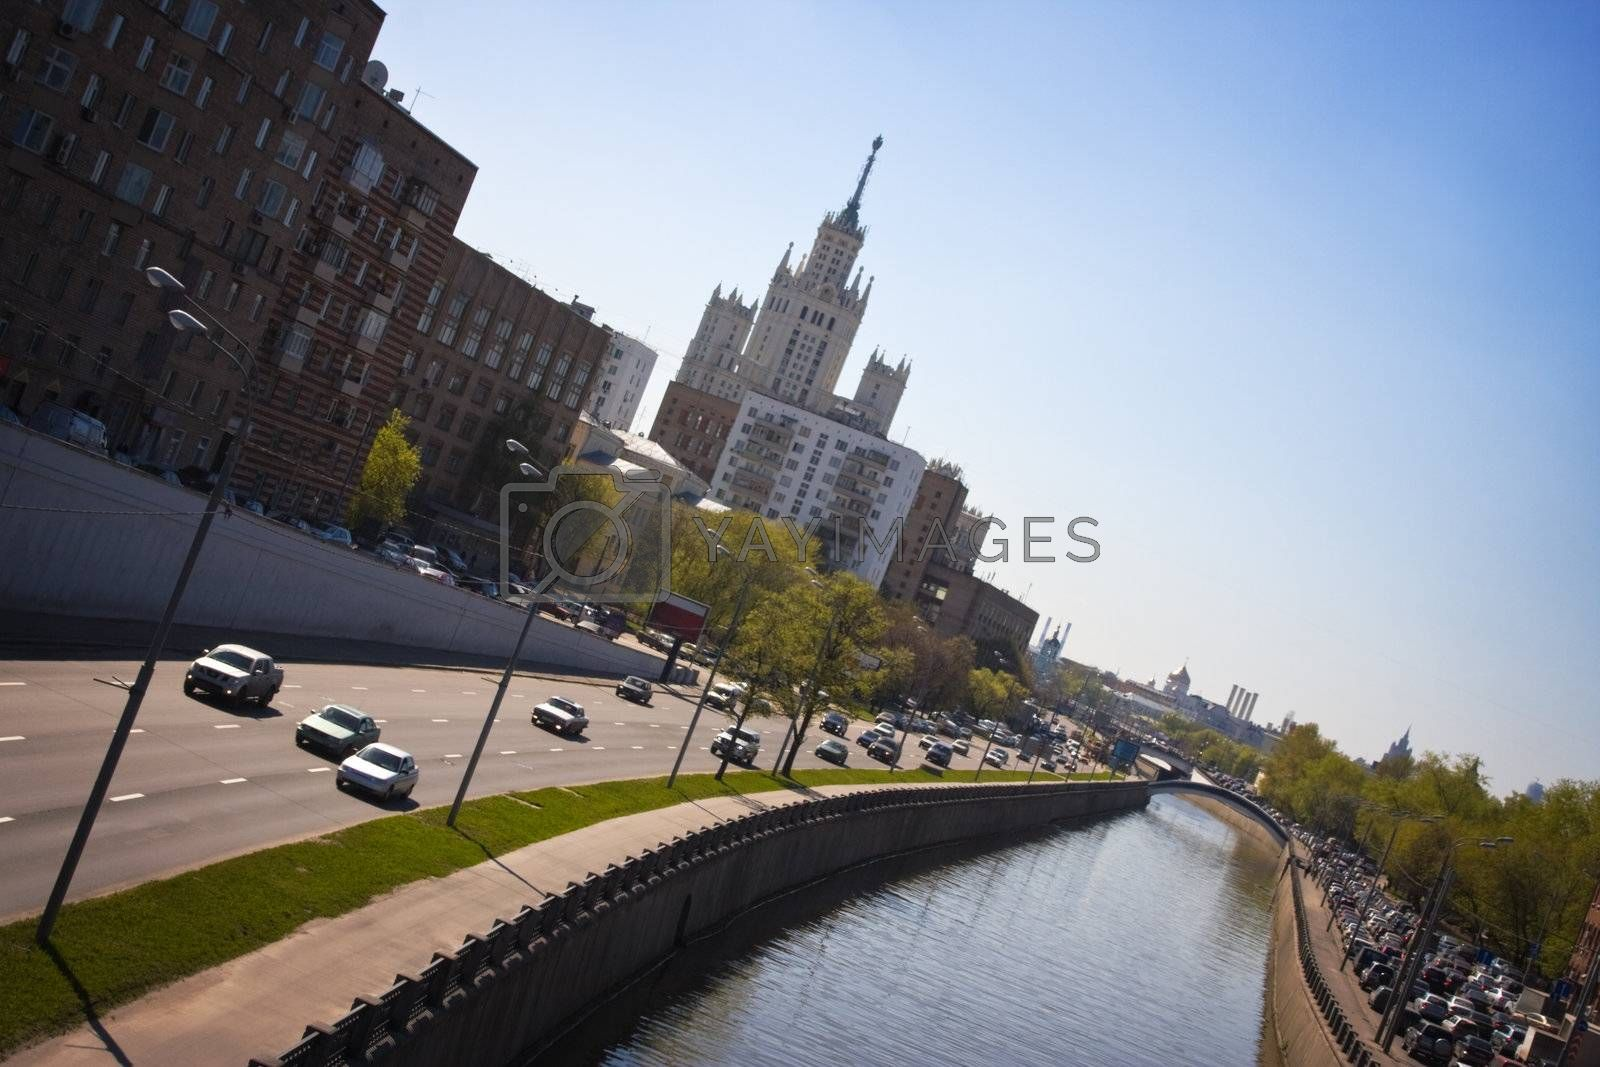 Streets of Moscow (Russia) in sunny spring day